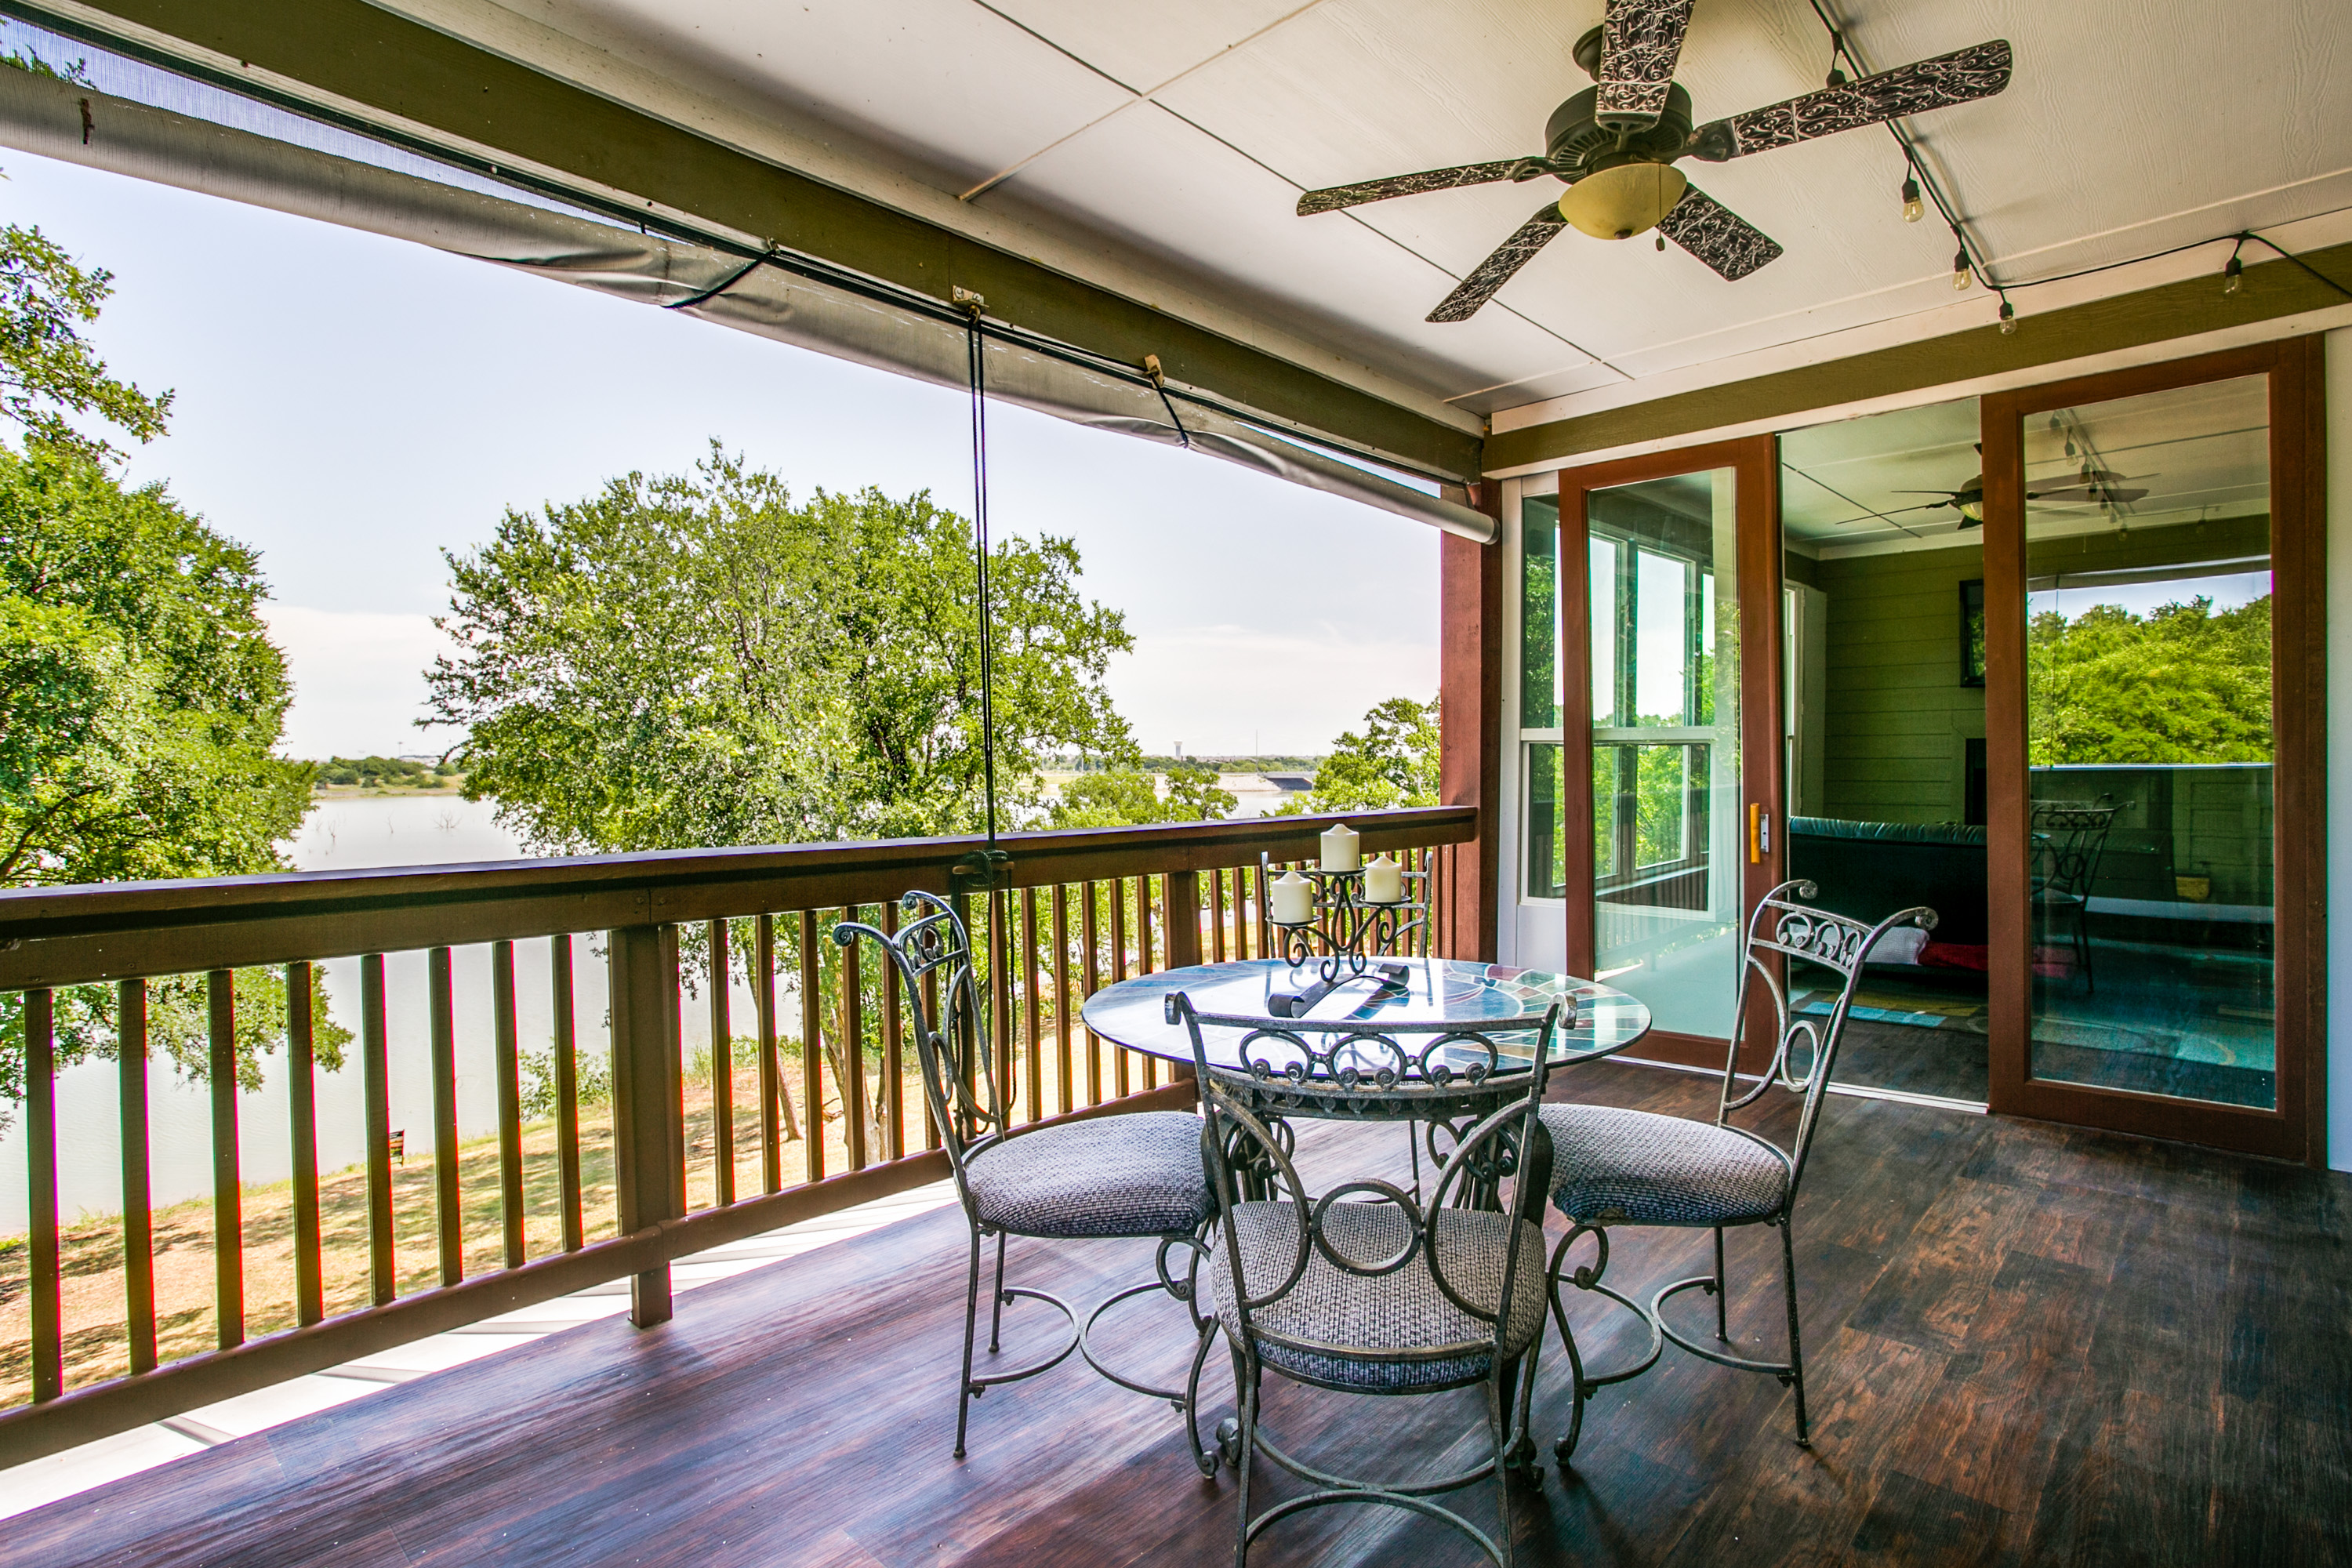 The Guest suite's outdoor area with quiet, secluded lake views. Beautifully designed for lake living, come on out.  You'll fall in love!